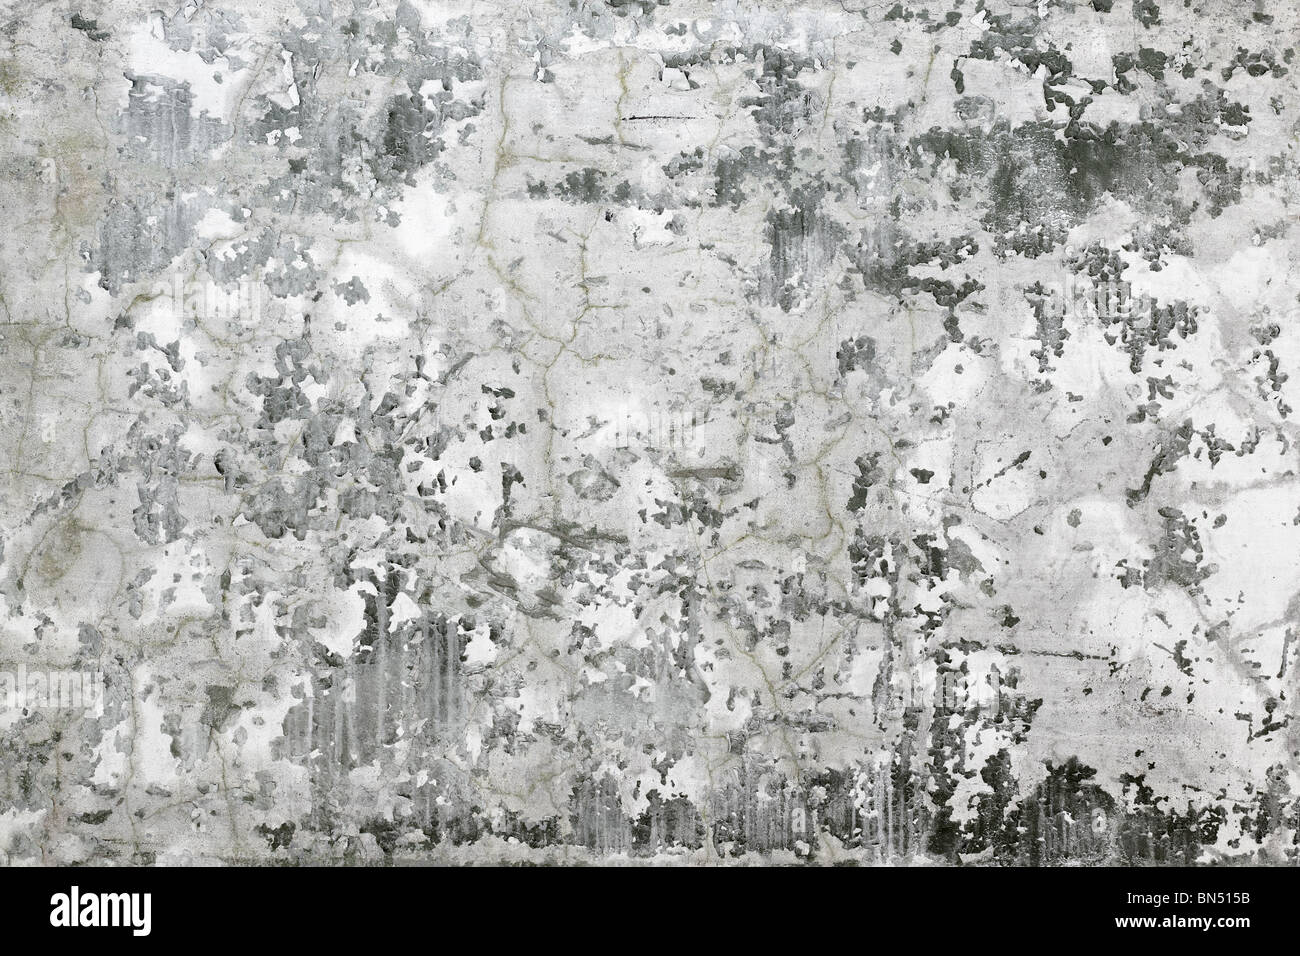 The gray concrete wall covered with stains and cracks - background - Stock Image